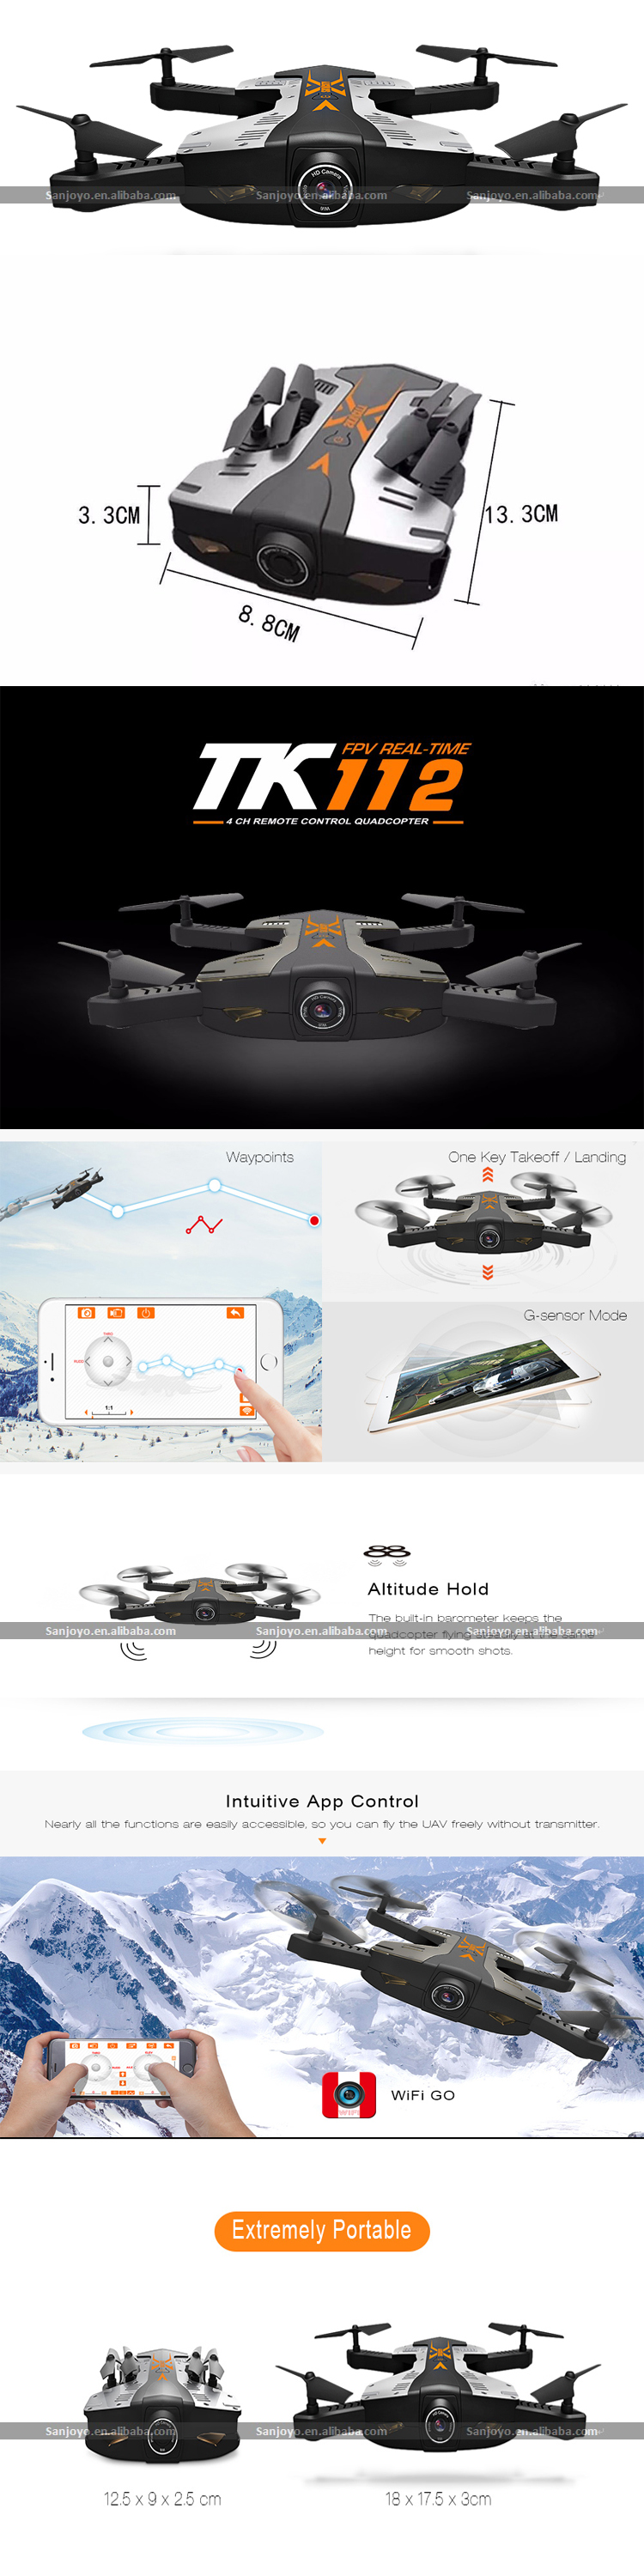 Latest Portable TK112W Foldable RC Drone RTF WiFi FPV 720P HD G-Sensor Mode Way points 360 Rotation Altitude Hold SJY-TK112HW